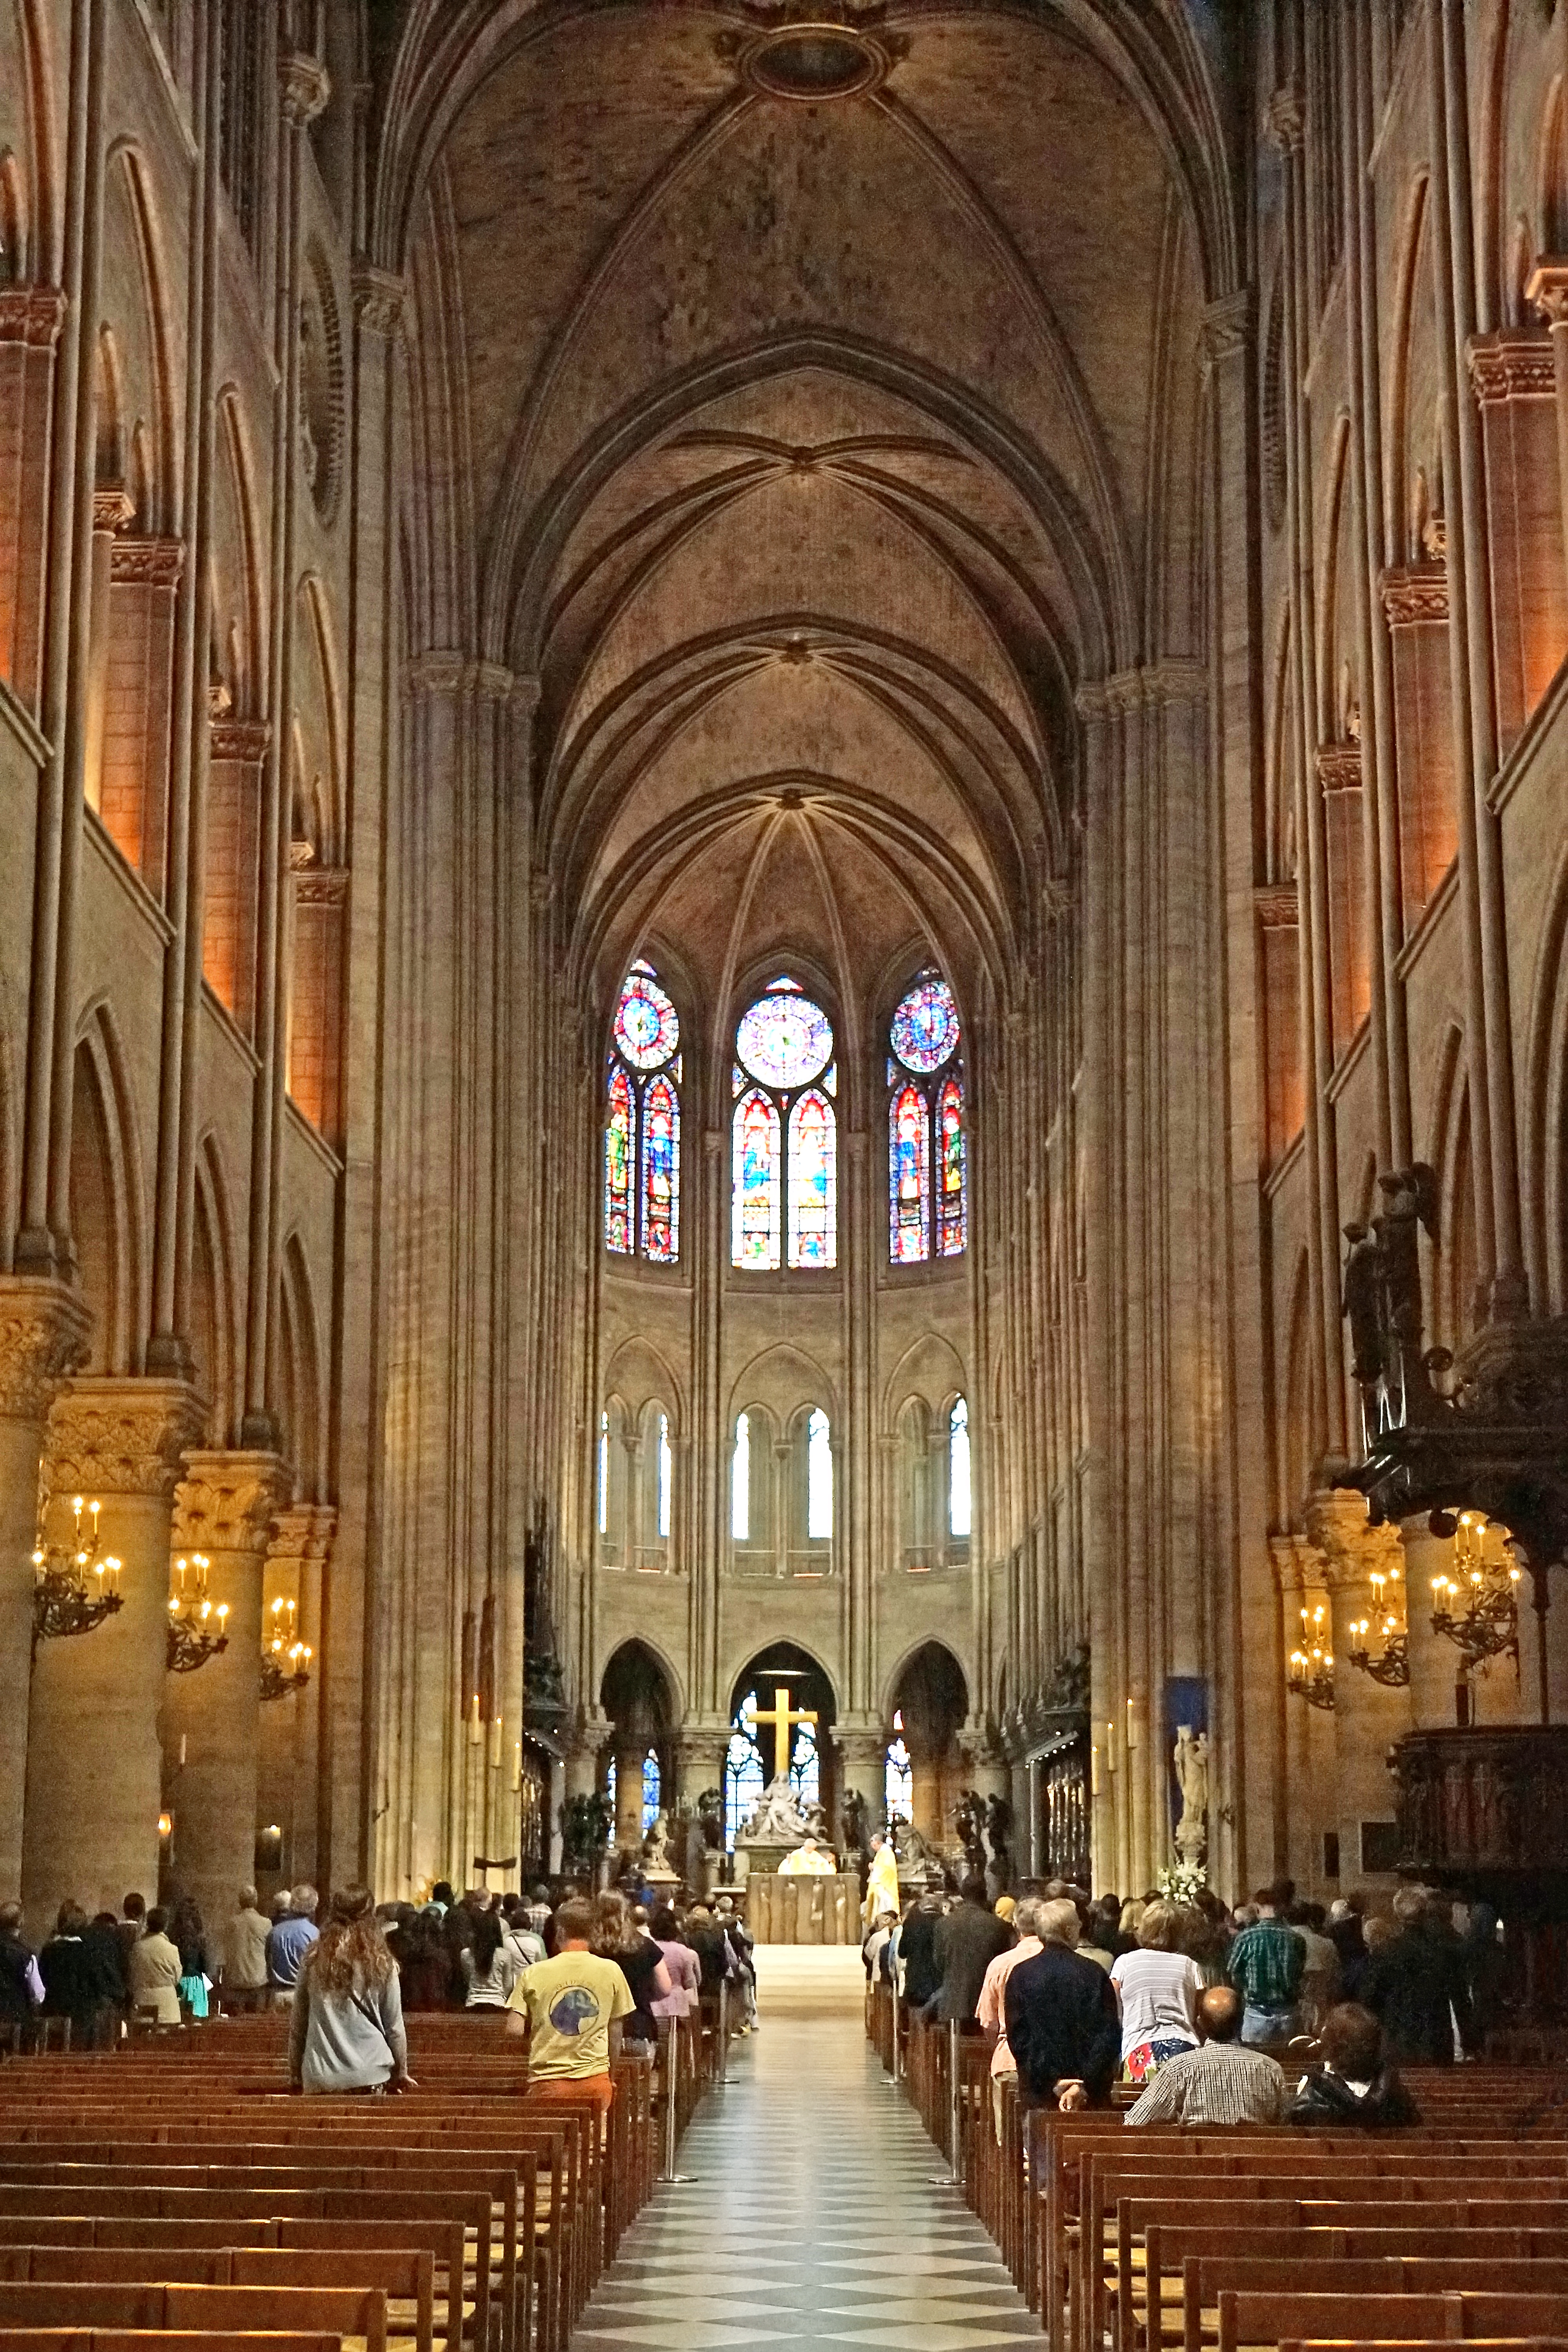 http://upload.wikimedia.org/wikipedia/commons/1/1e/Nave_of_Notre-Dame_de_Paris%2C_22_June_2014_002.jpg